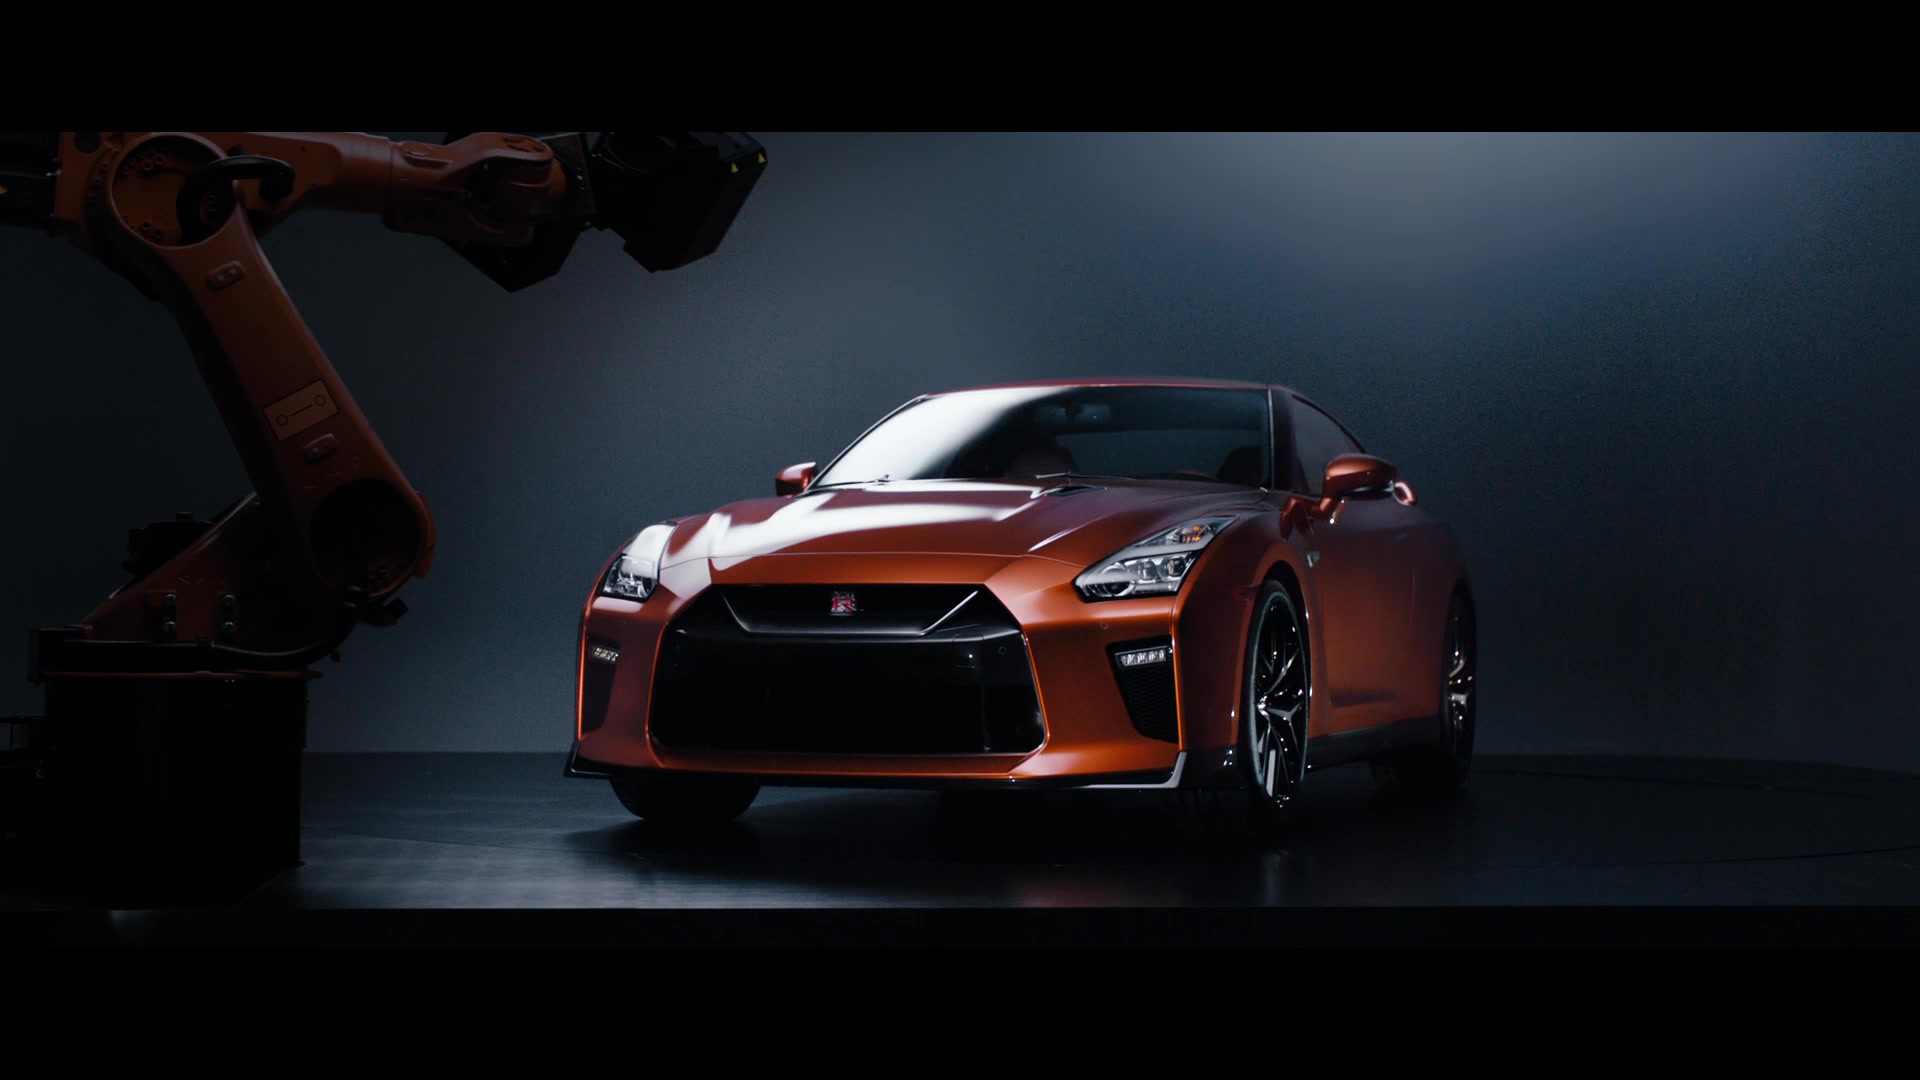 Nissan's MY17 GT-R unveiled at New York International Auto show